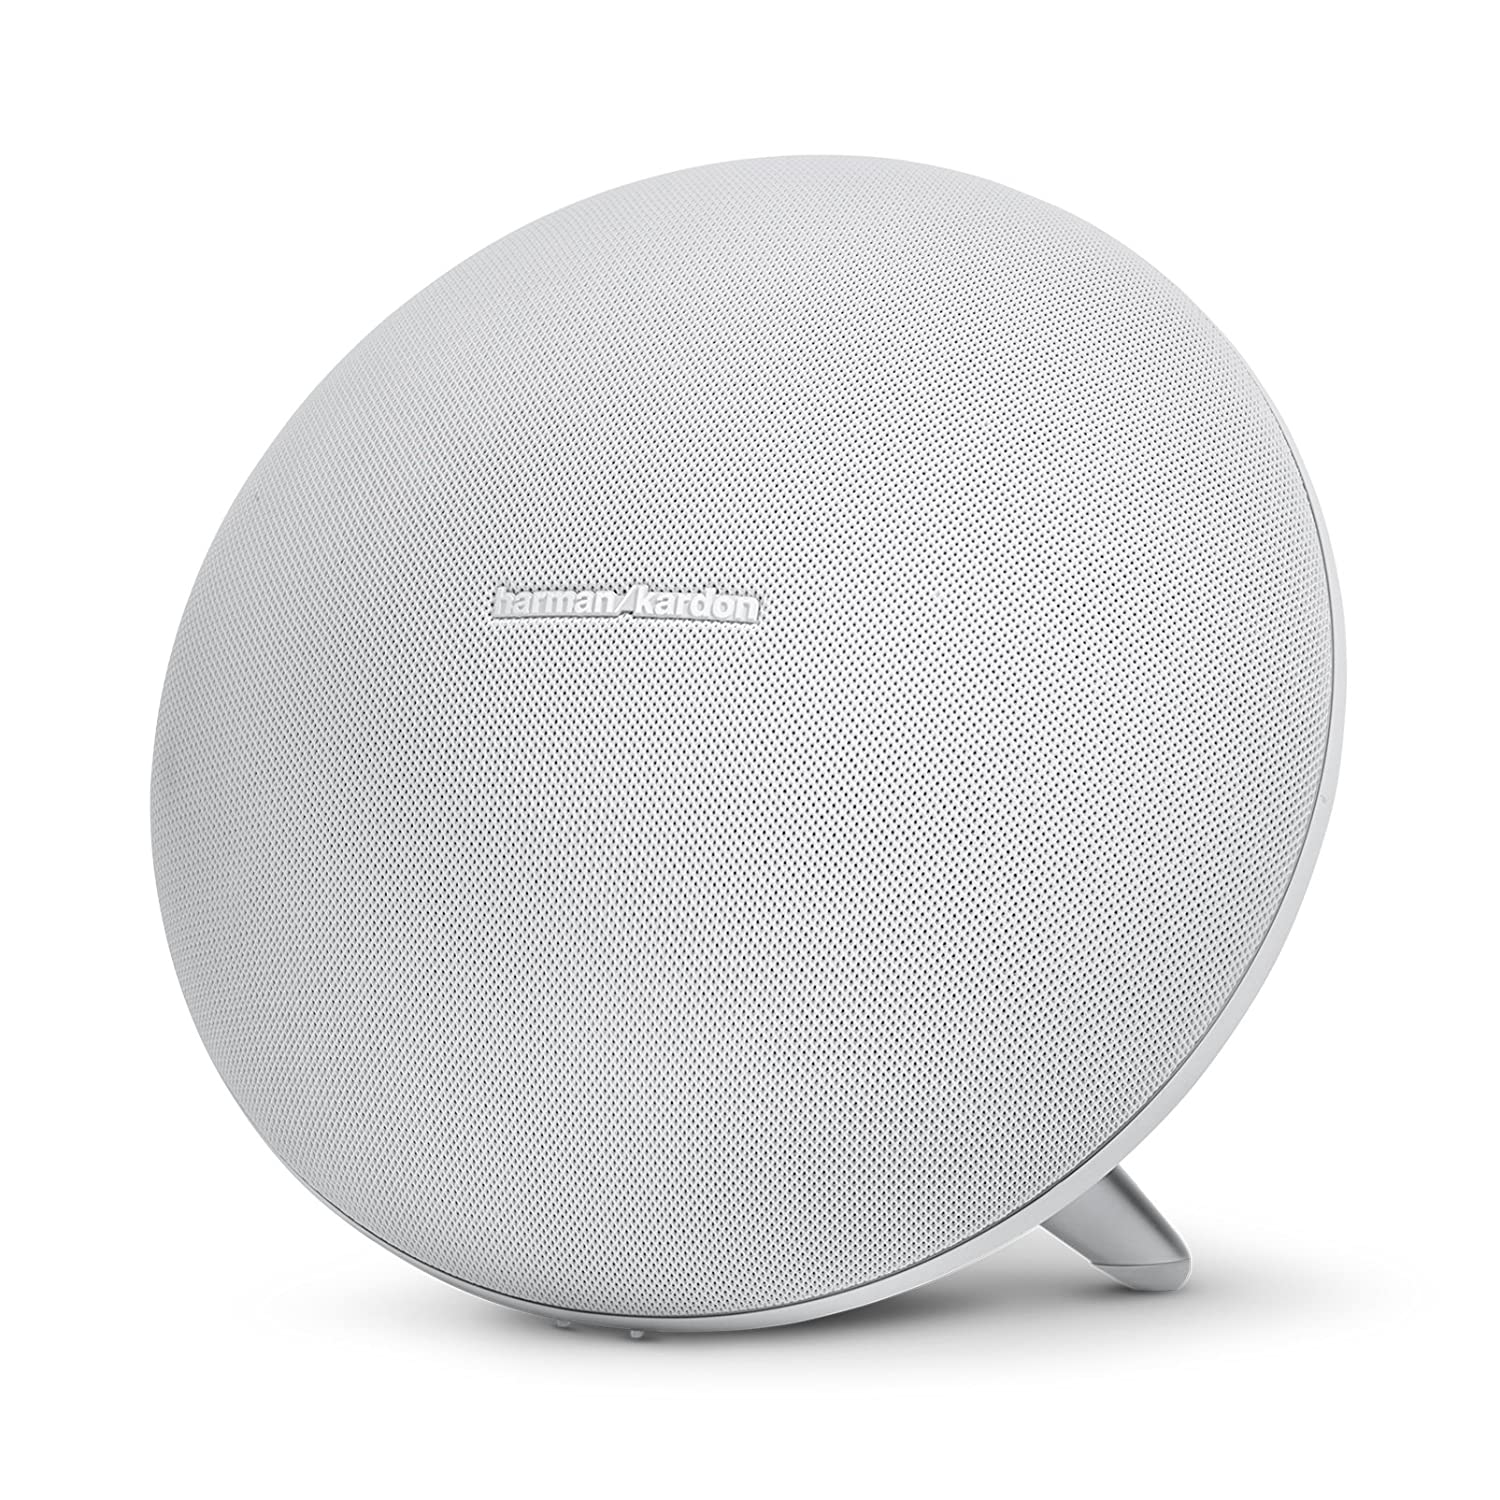 Harman Kardon amazon